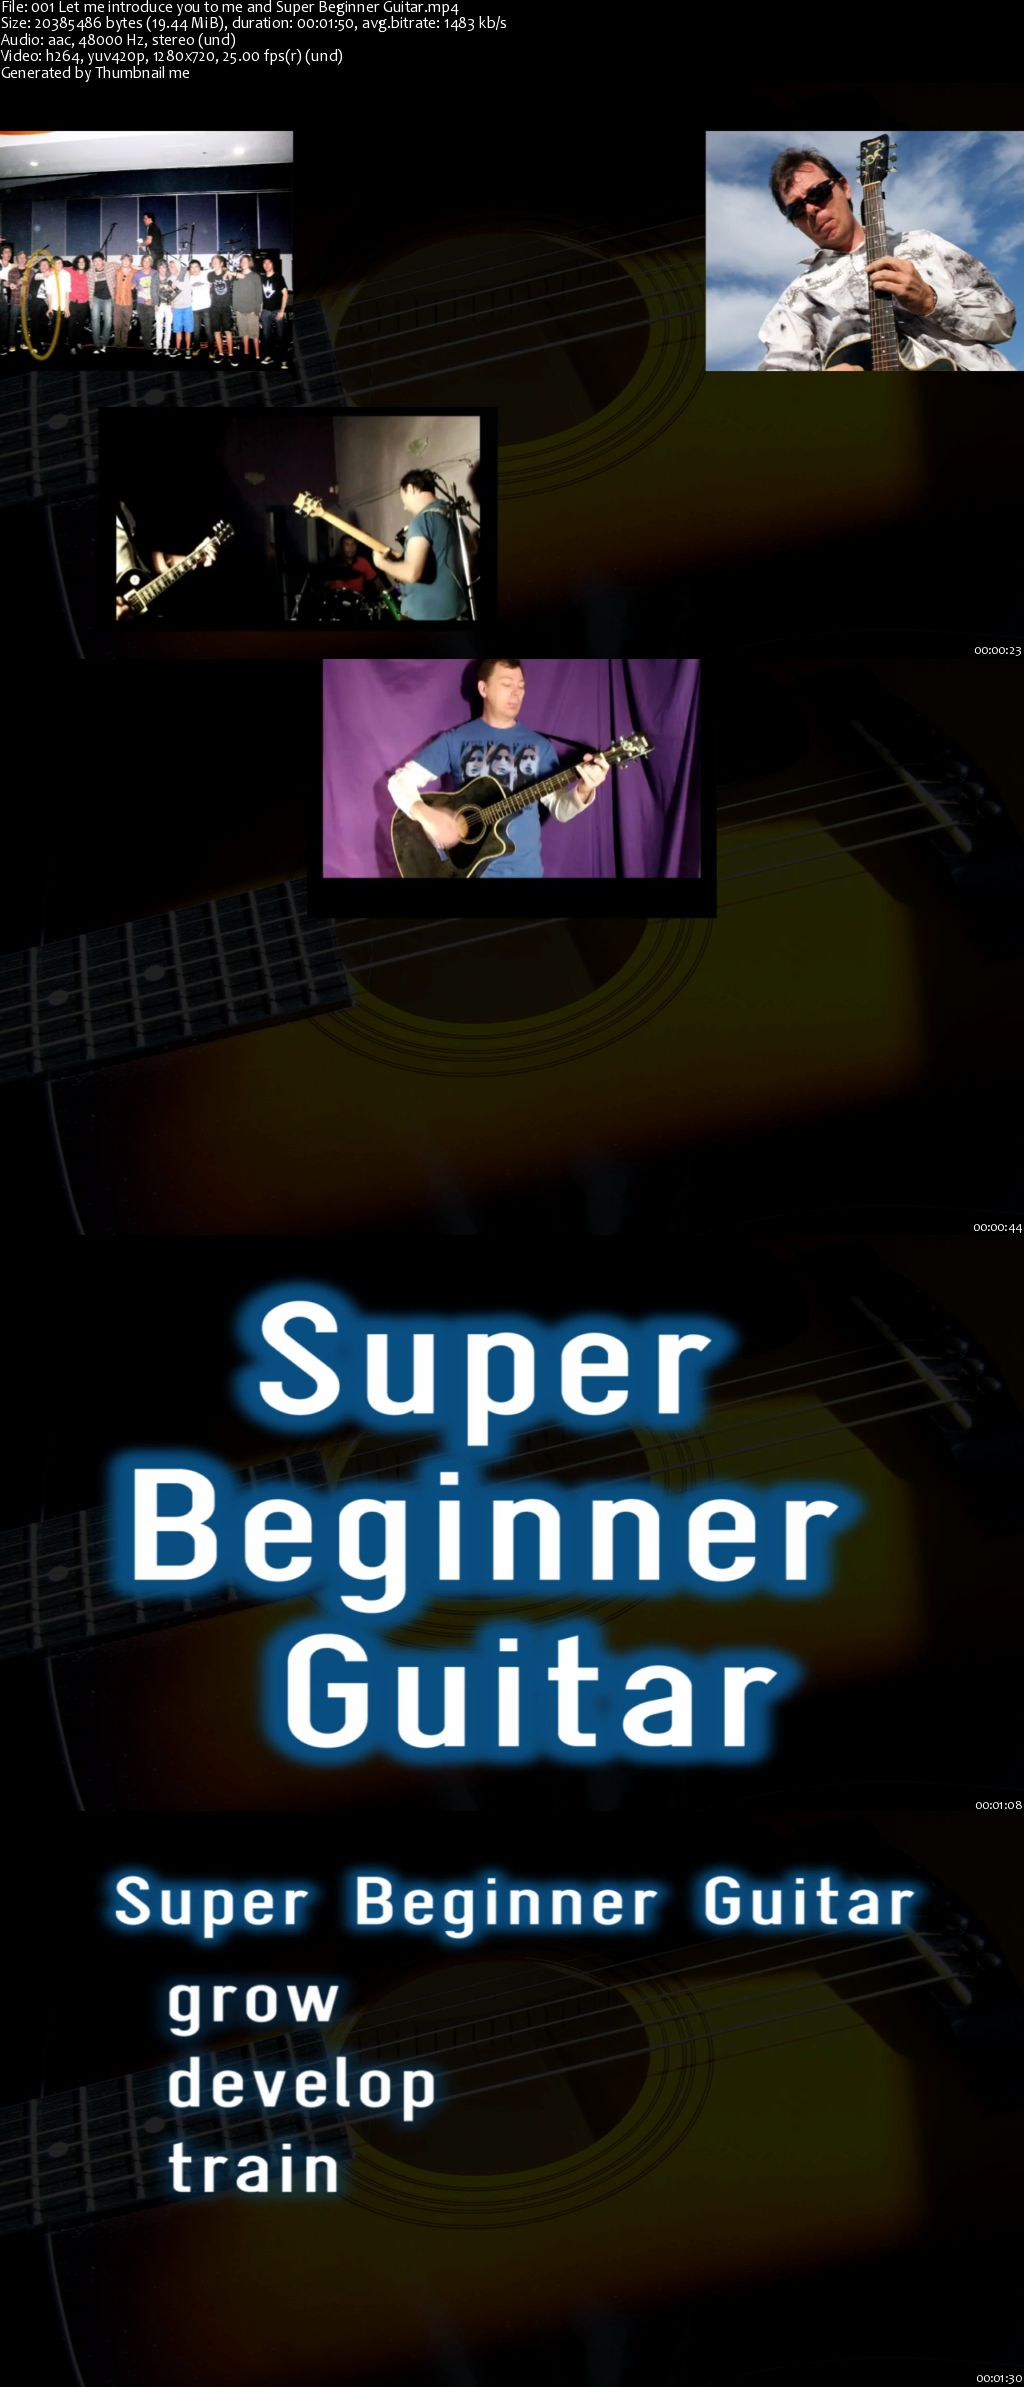 Super Beginner Guitar - start right, start awesome